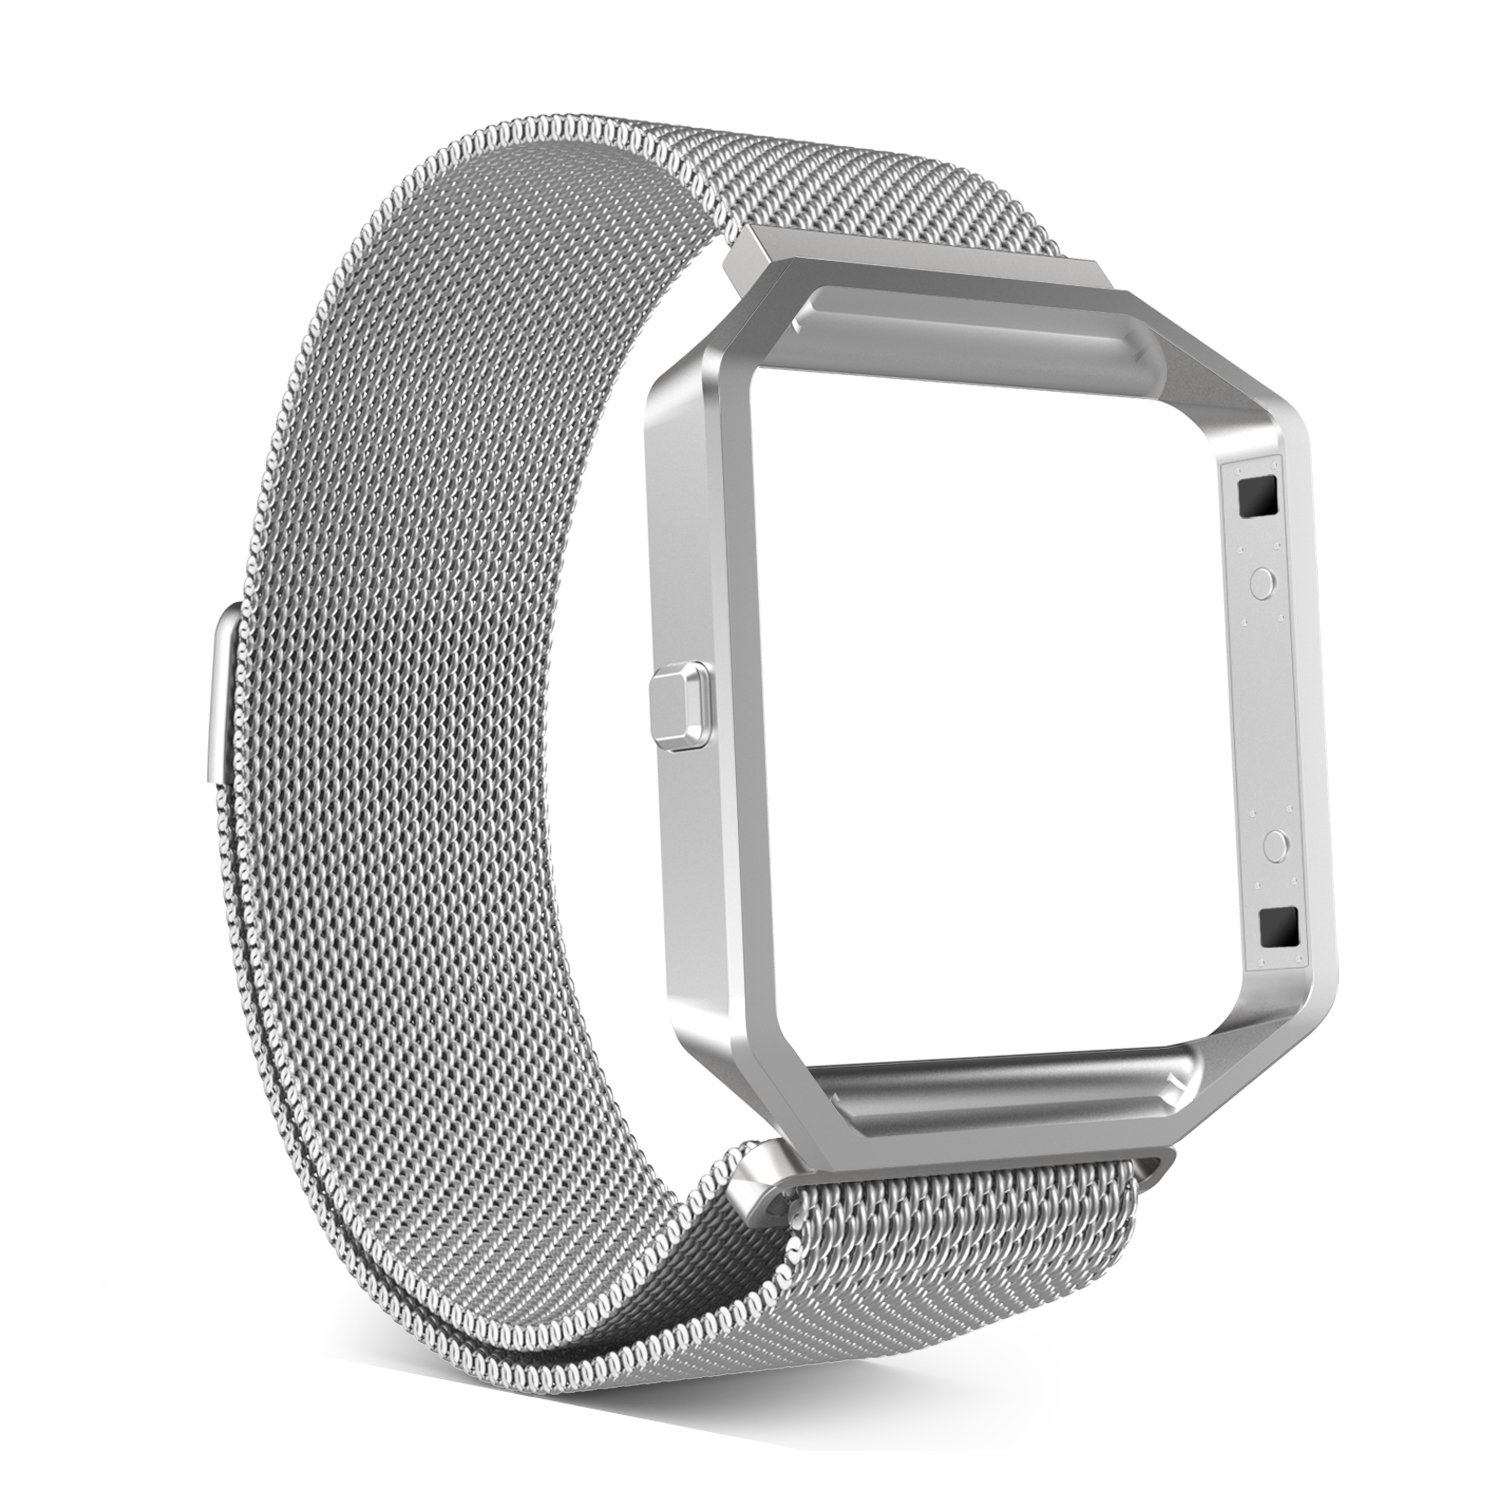 Fitbit Blaze Accessories Band, MoKo Metal Frame Housing + Milanese Loop Mesh Stainless Steel Bracelet Strap Band with Magnet Lock for Fitbit Blaze Smart Fitness Watch - SILVER